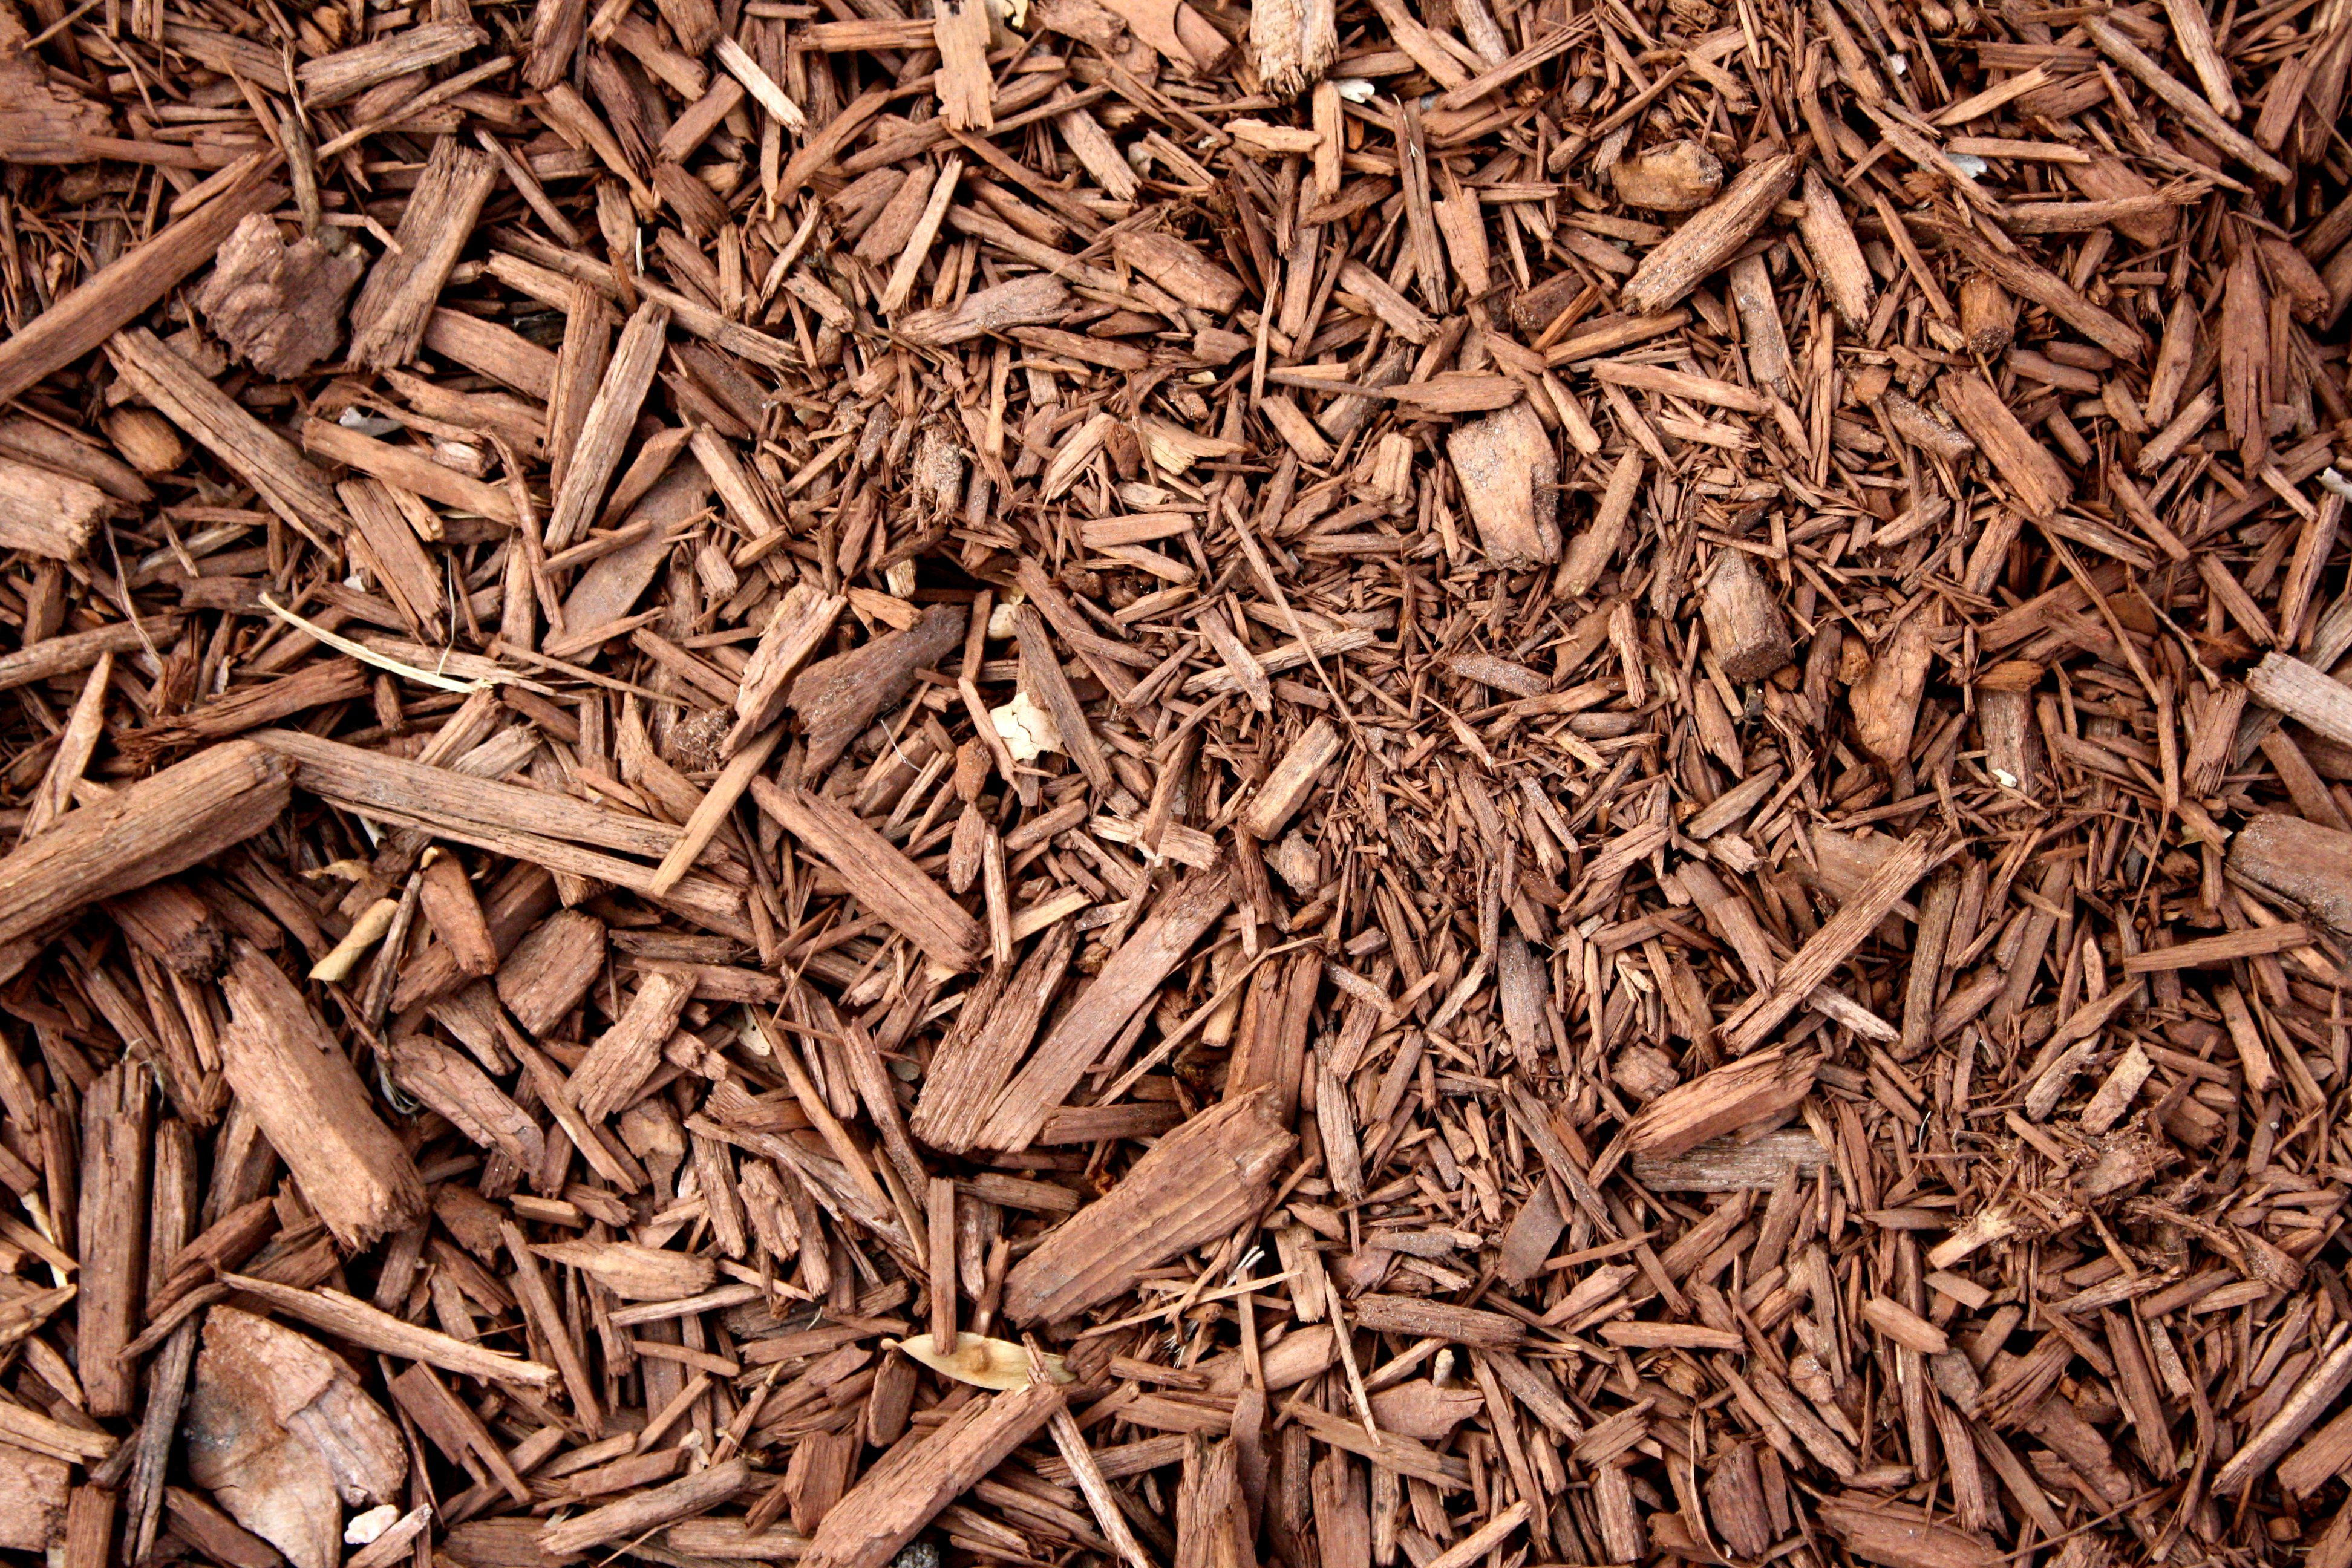 Landscaping With Wood Mulch : Brown wood chip mulch texture picture free photograph